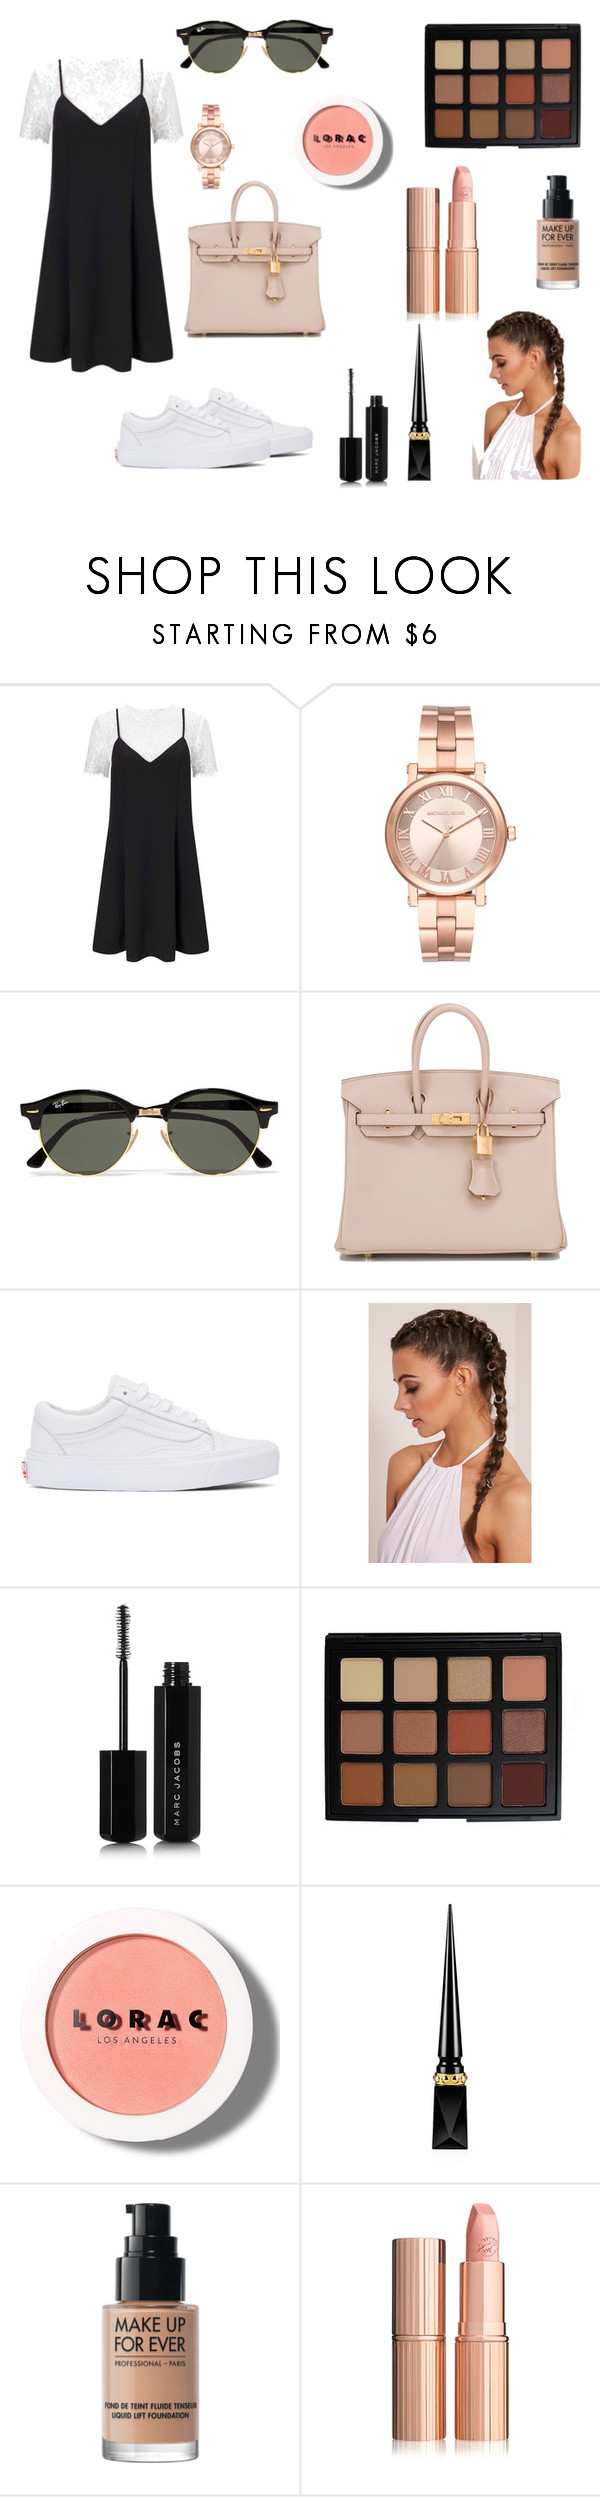 """Untitled #452"" by patricia-correia1990 on Polyvore featuring Miss Selfridge, Michael Kors, Ray-Ban, Hermès, Vans, Marc Jacobs, Morphe, LORAC, Christian Louboutin and MAKE UP FOR EVER"